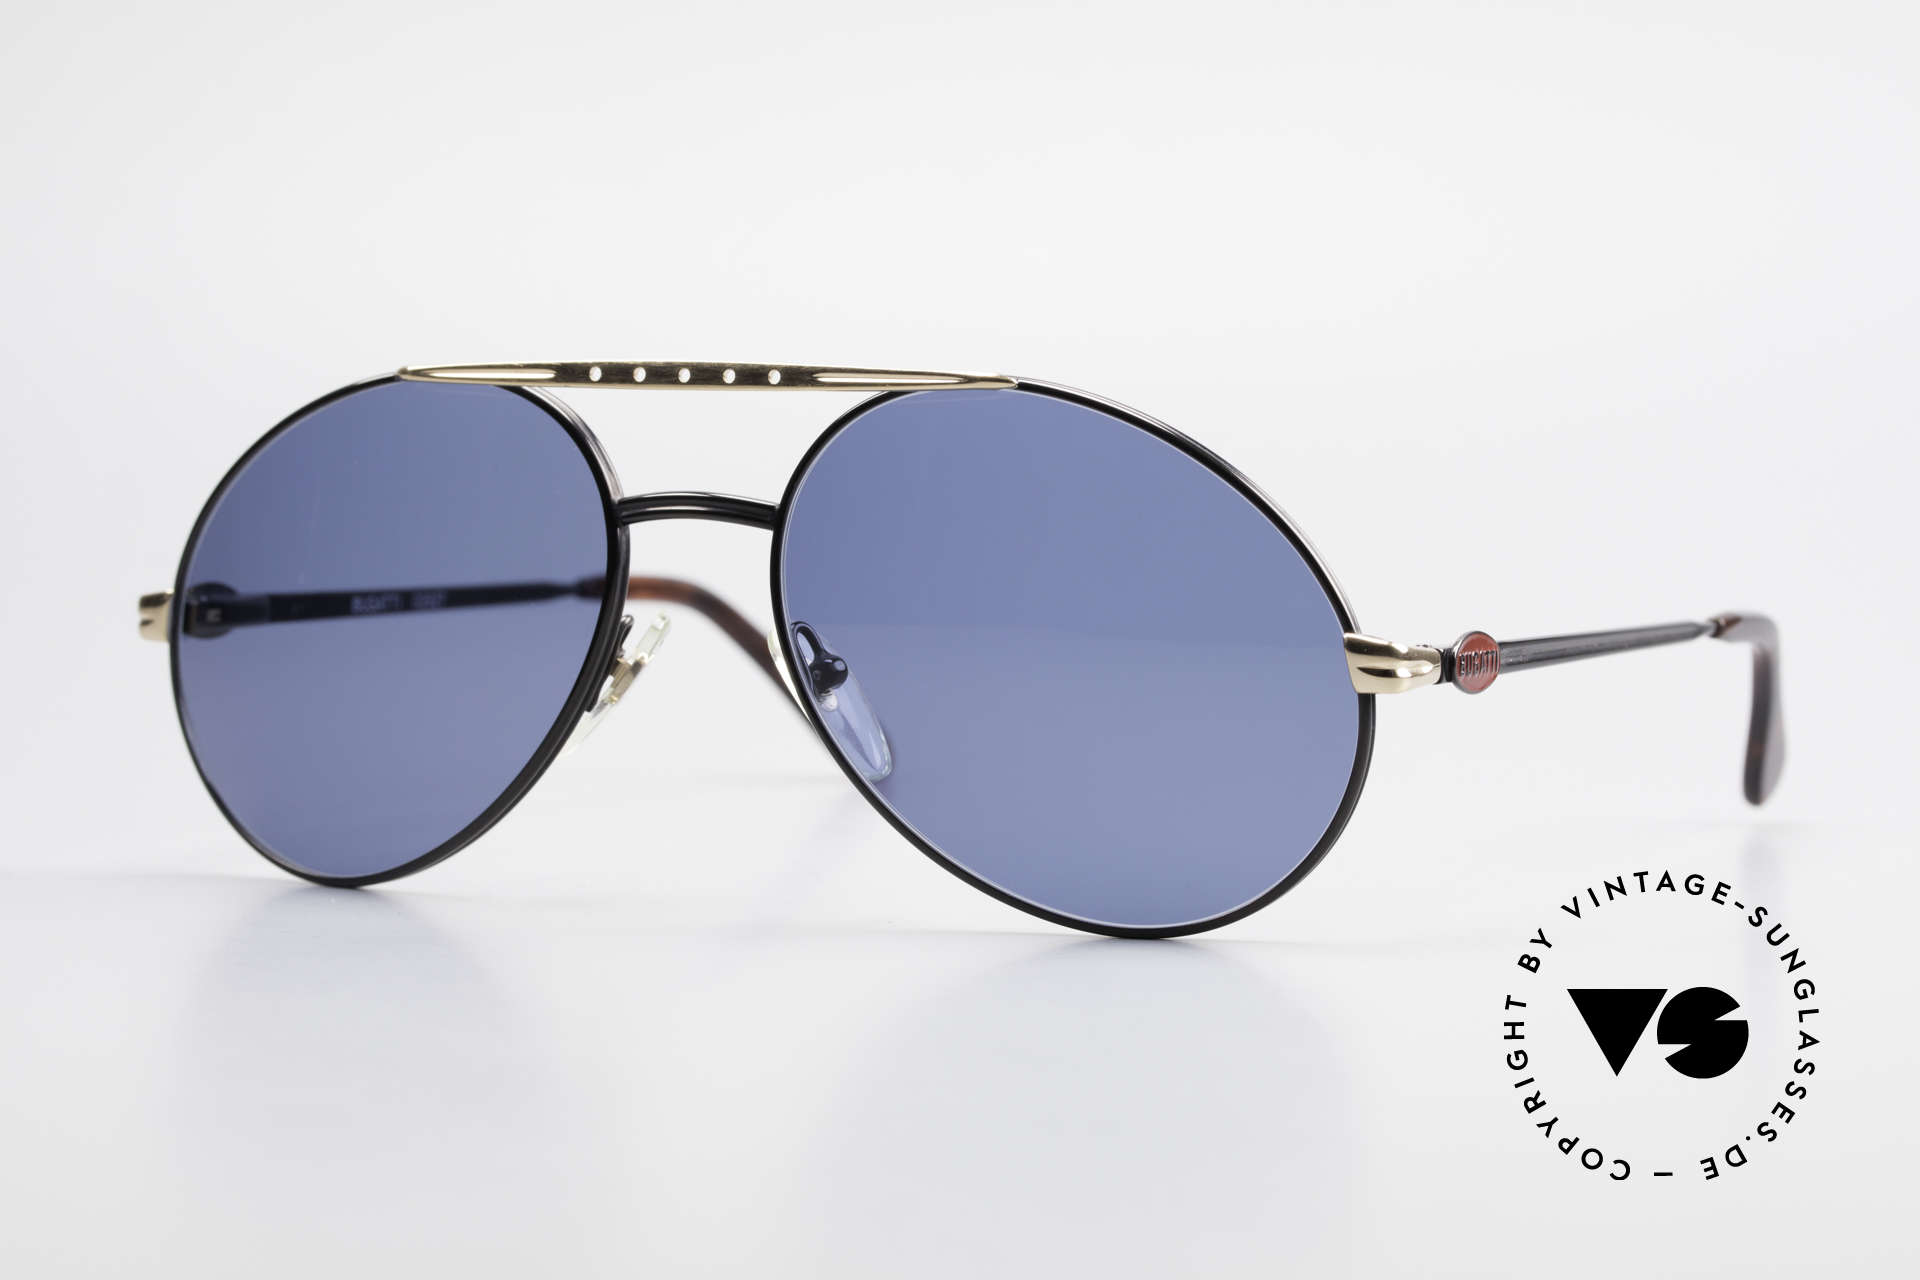 Bugatti 02927 Large 80's Sunglasses For Men, very elegant Bugatti vintage 80's designer sunglasses, Made for Men